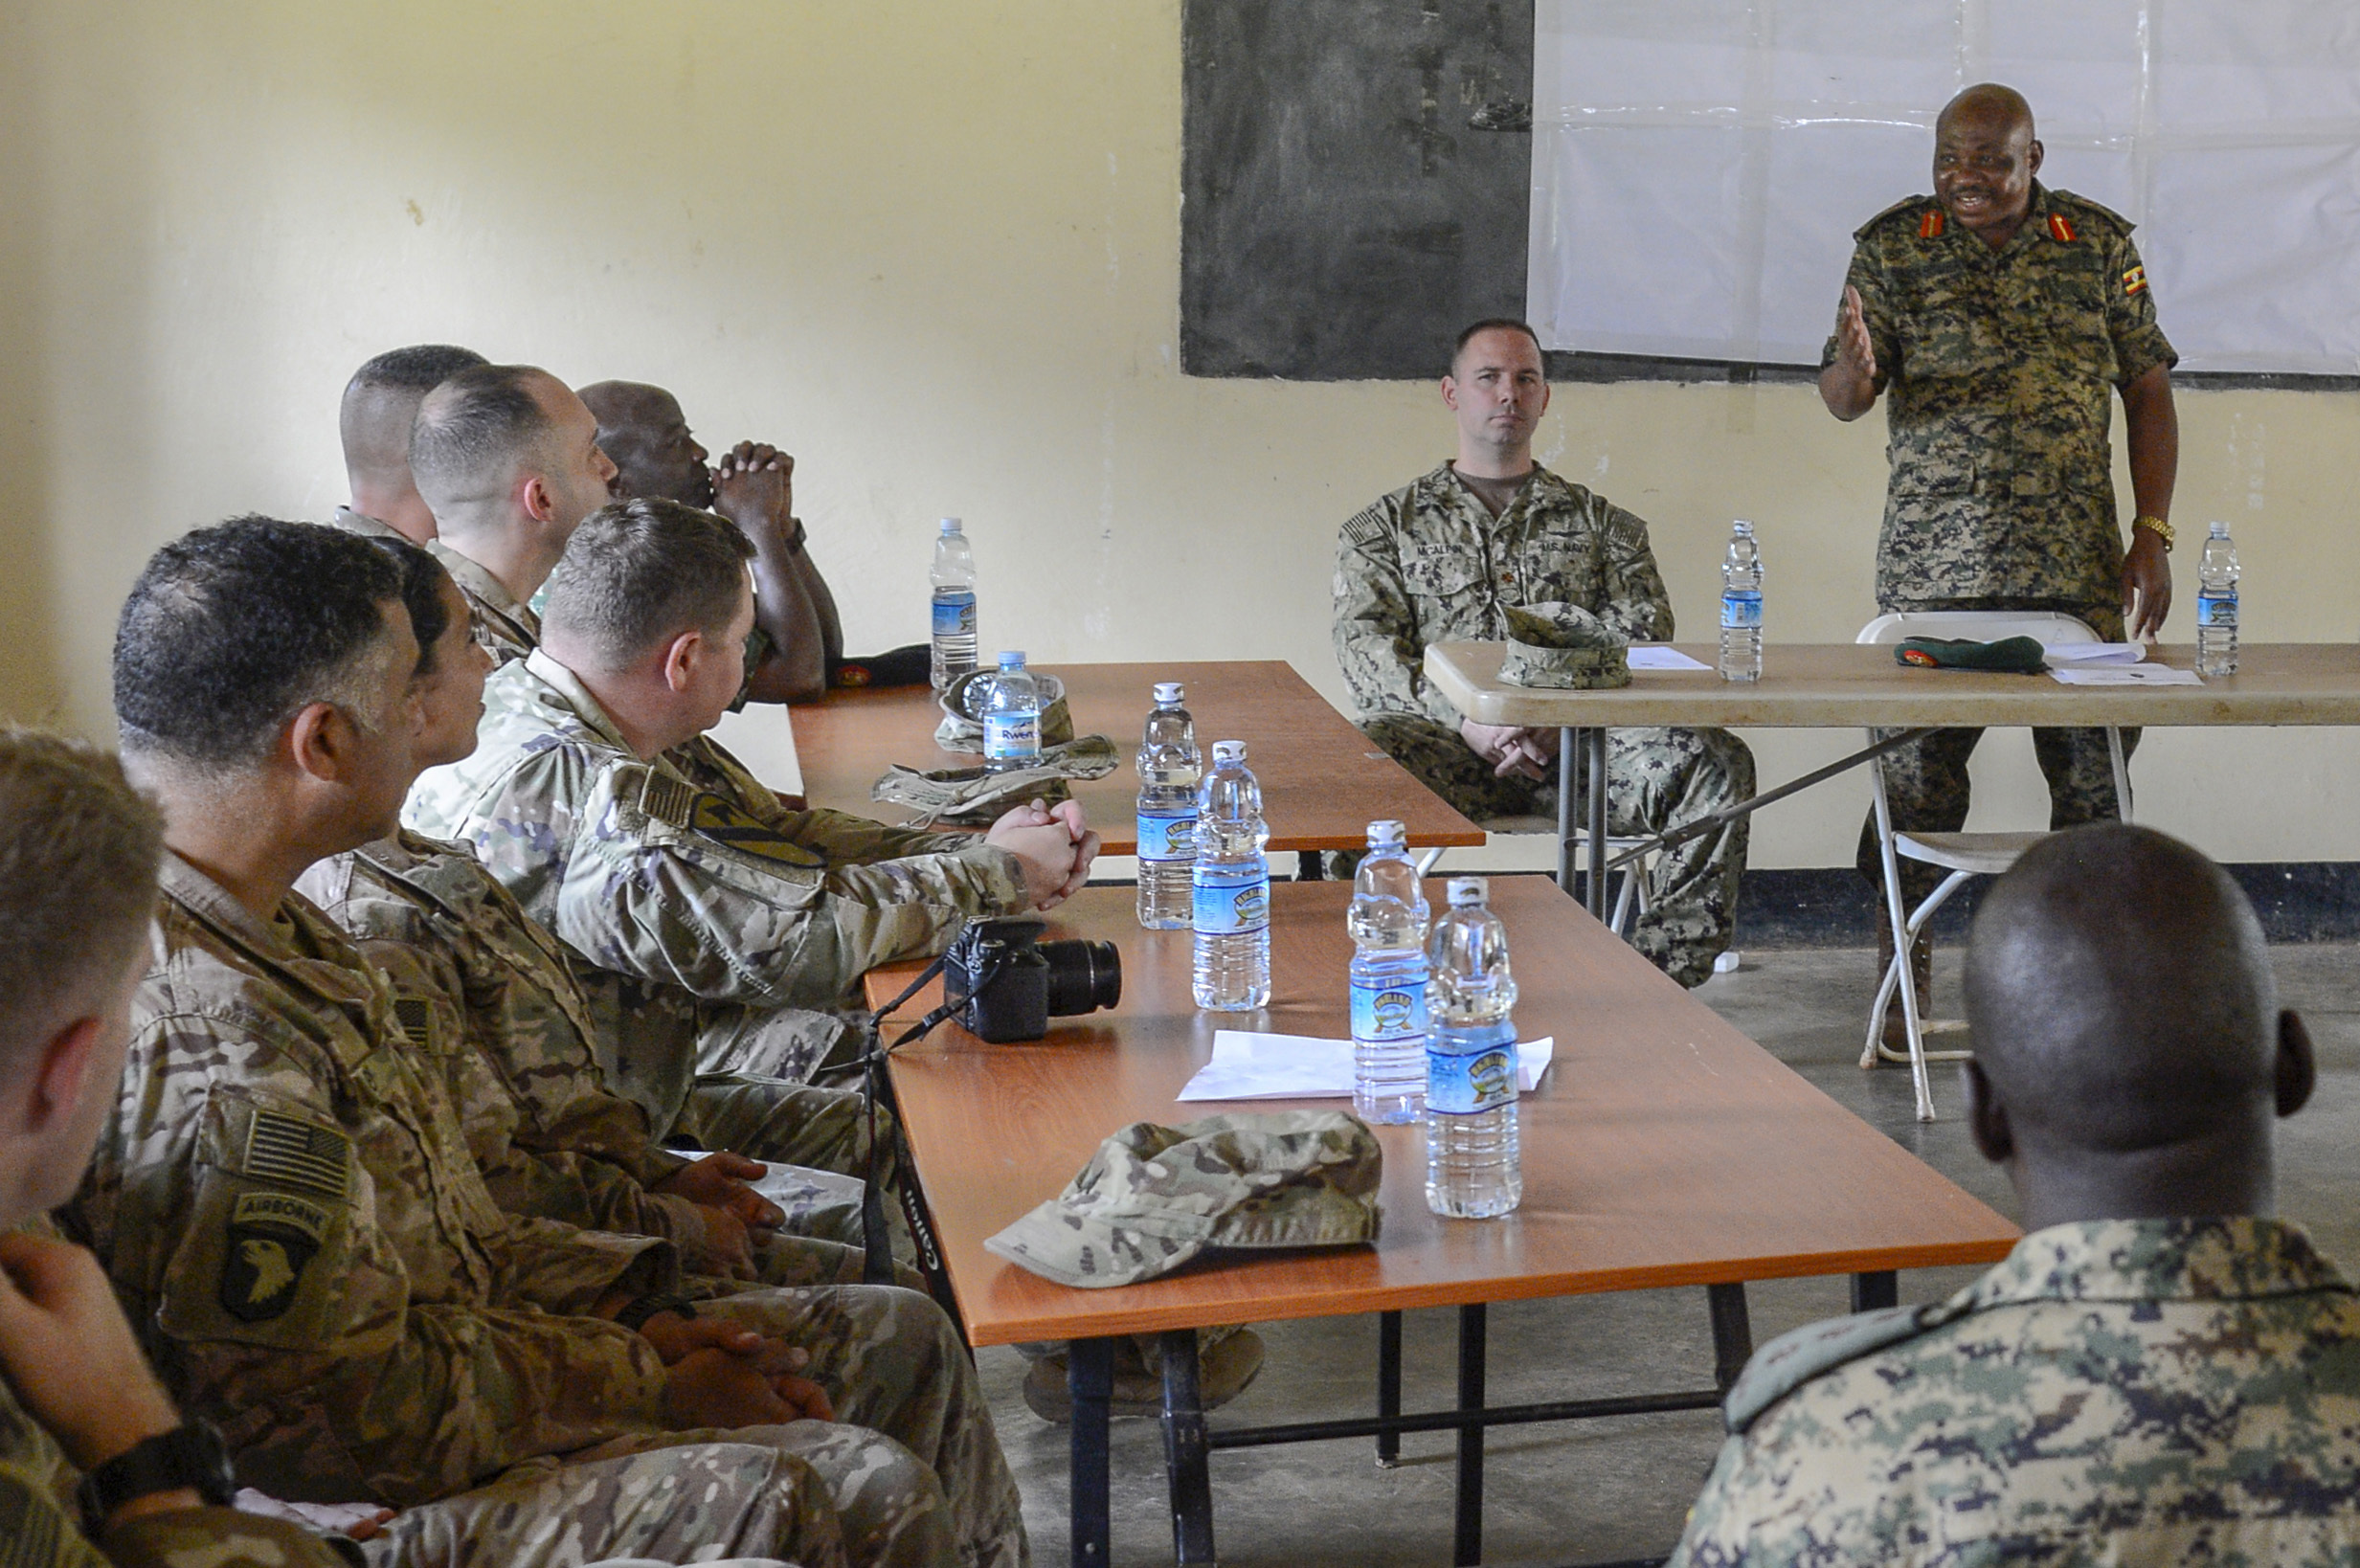 Uganda People's Defense Force (UPDF) Brig. Gen. Jack Backasumba, Camp Singo Commandant, thanks U.S. Army Soldiers during the graduation ceremony for a 10-week civil affairs operations course provided by the 404th Civil Affairs Battalion, at Camp Singo, Uganda, April 13, 2018. The civil affairs course is designed to enhance the UPDF's capability and capacity to support its enduring African Union peacekeeping force and African Union Mission in Somalia mandates through civil military cooperation. (U.S. Navy Photo by Mass Communication Specialist 2nd Class Timothy M. Ahearn)